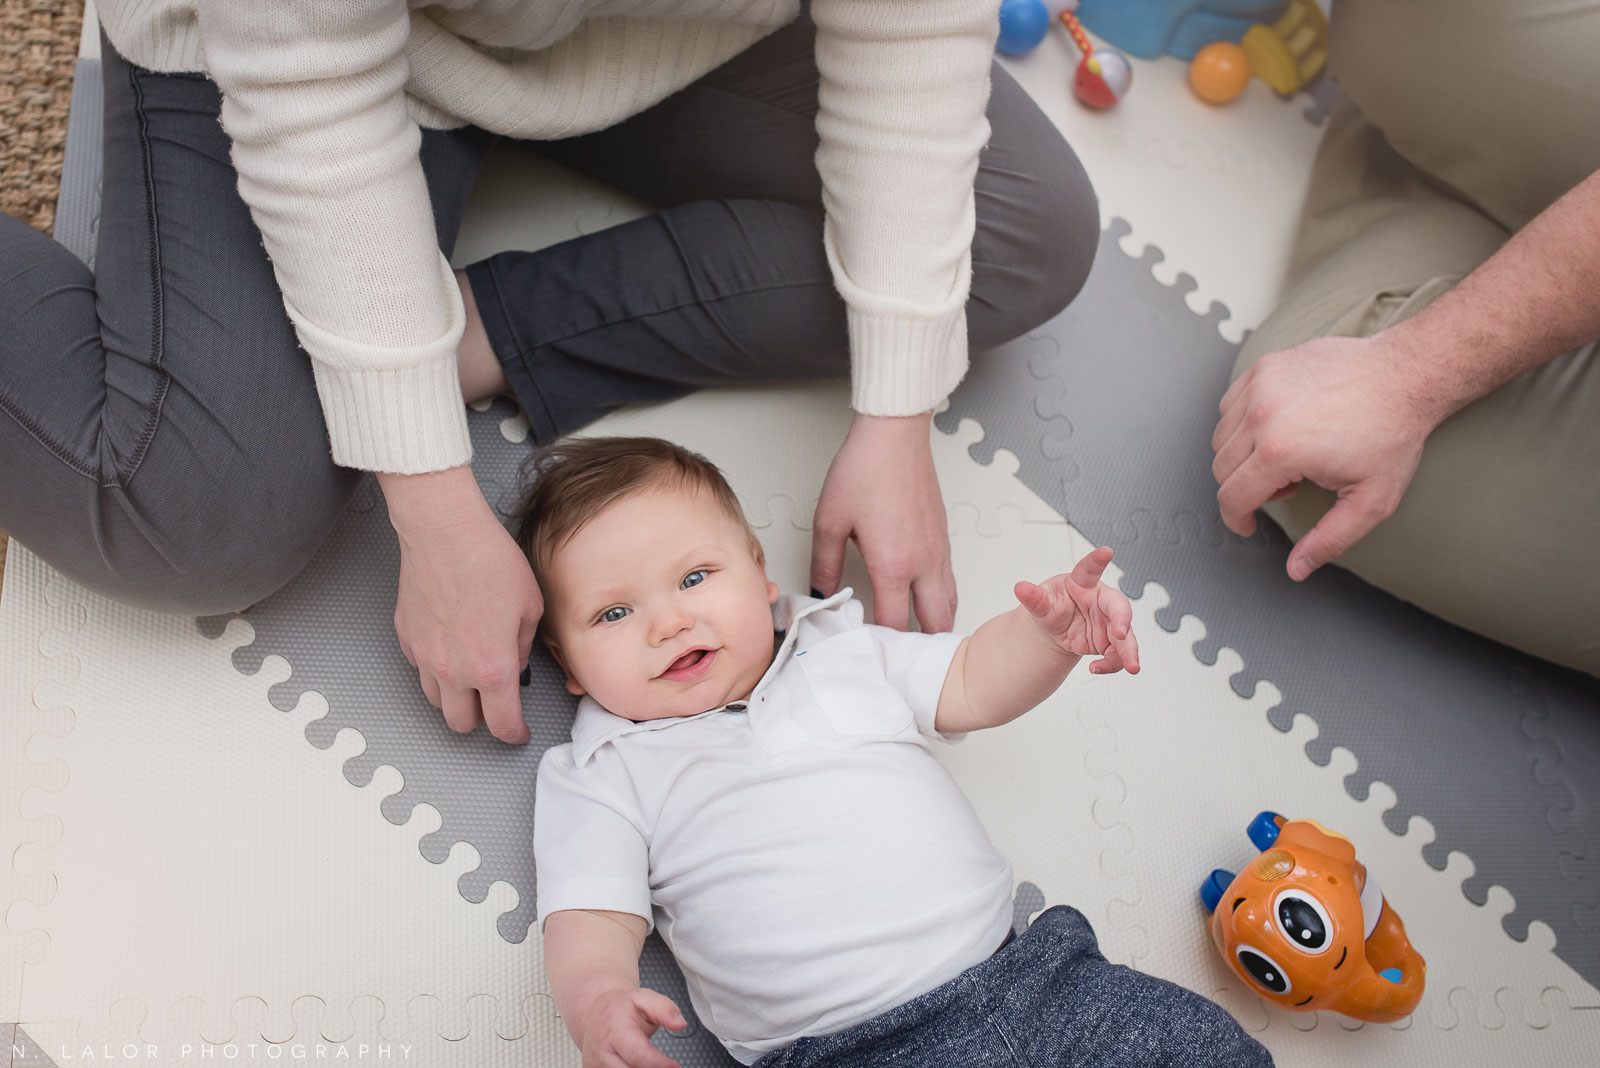 Baby boy on his play mat. Lifestyle family photo by N. Lalor Photography.